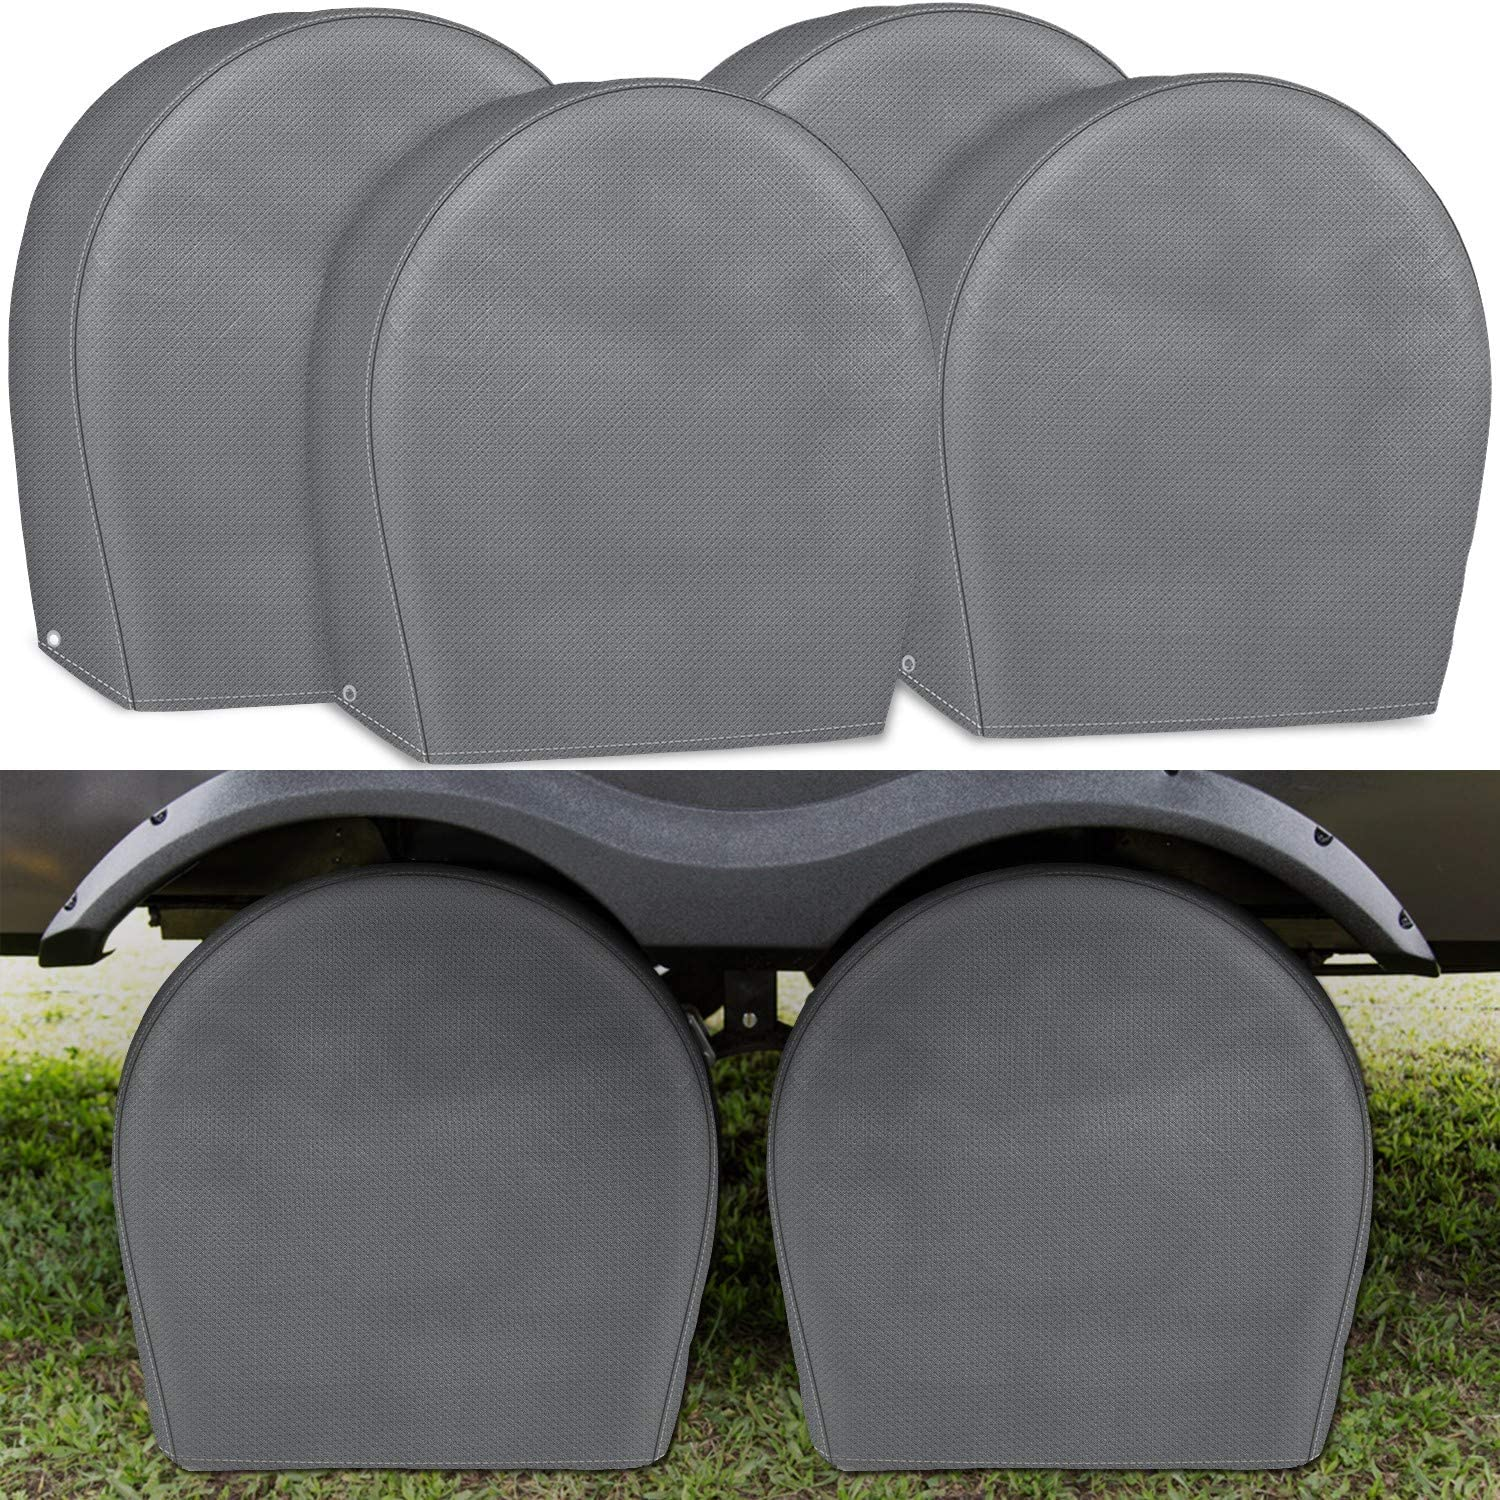 Jeep Explore Land Durable Tire Cover Set of 4 Motorhome SUV UV Resistant and Water Resistant Tire Protector for RV Travel Trailer Wheel Covers Fits Tires Diameters 29-31.75 inches